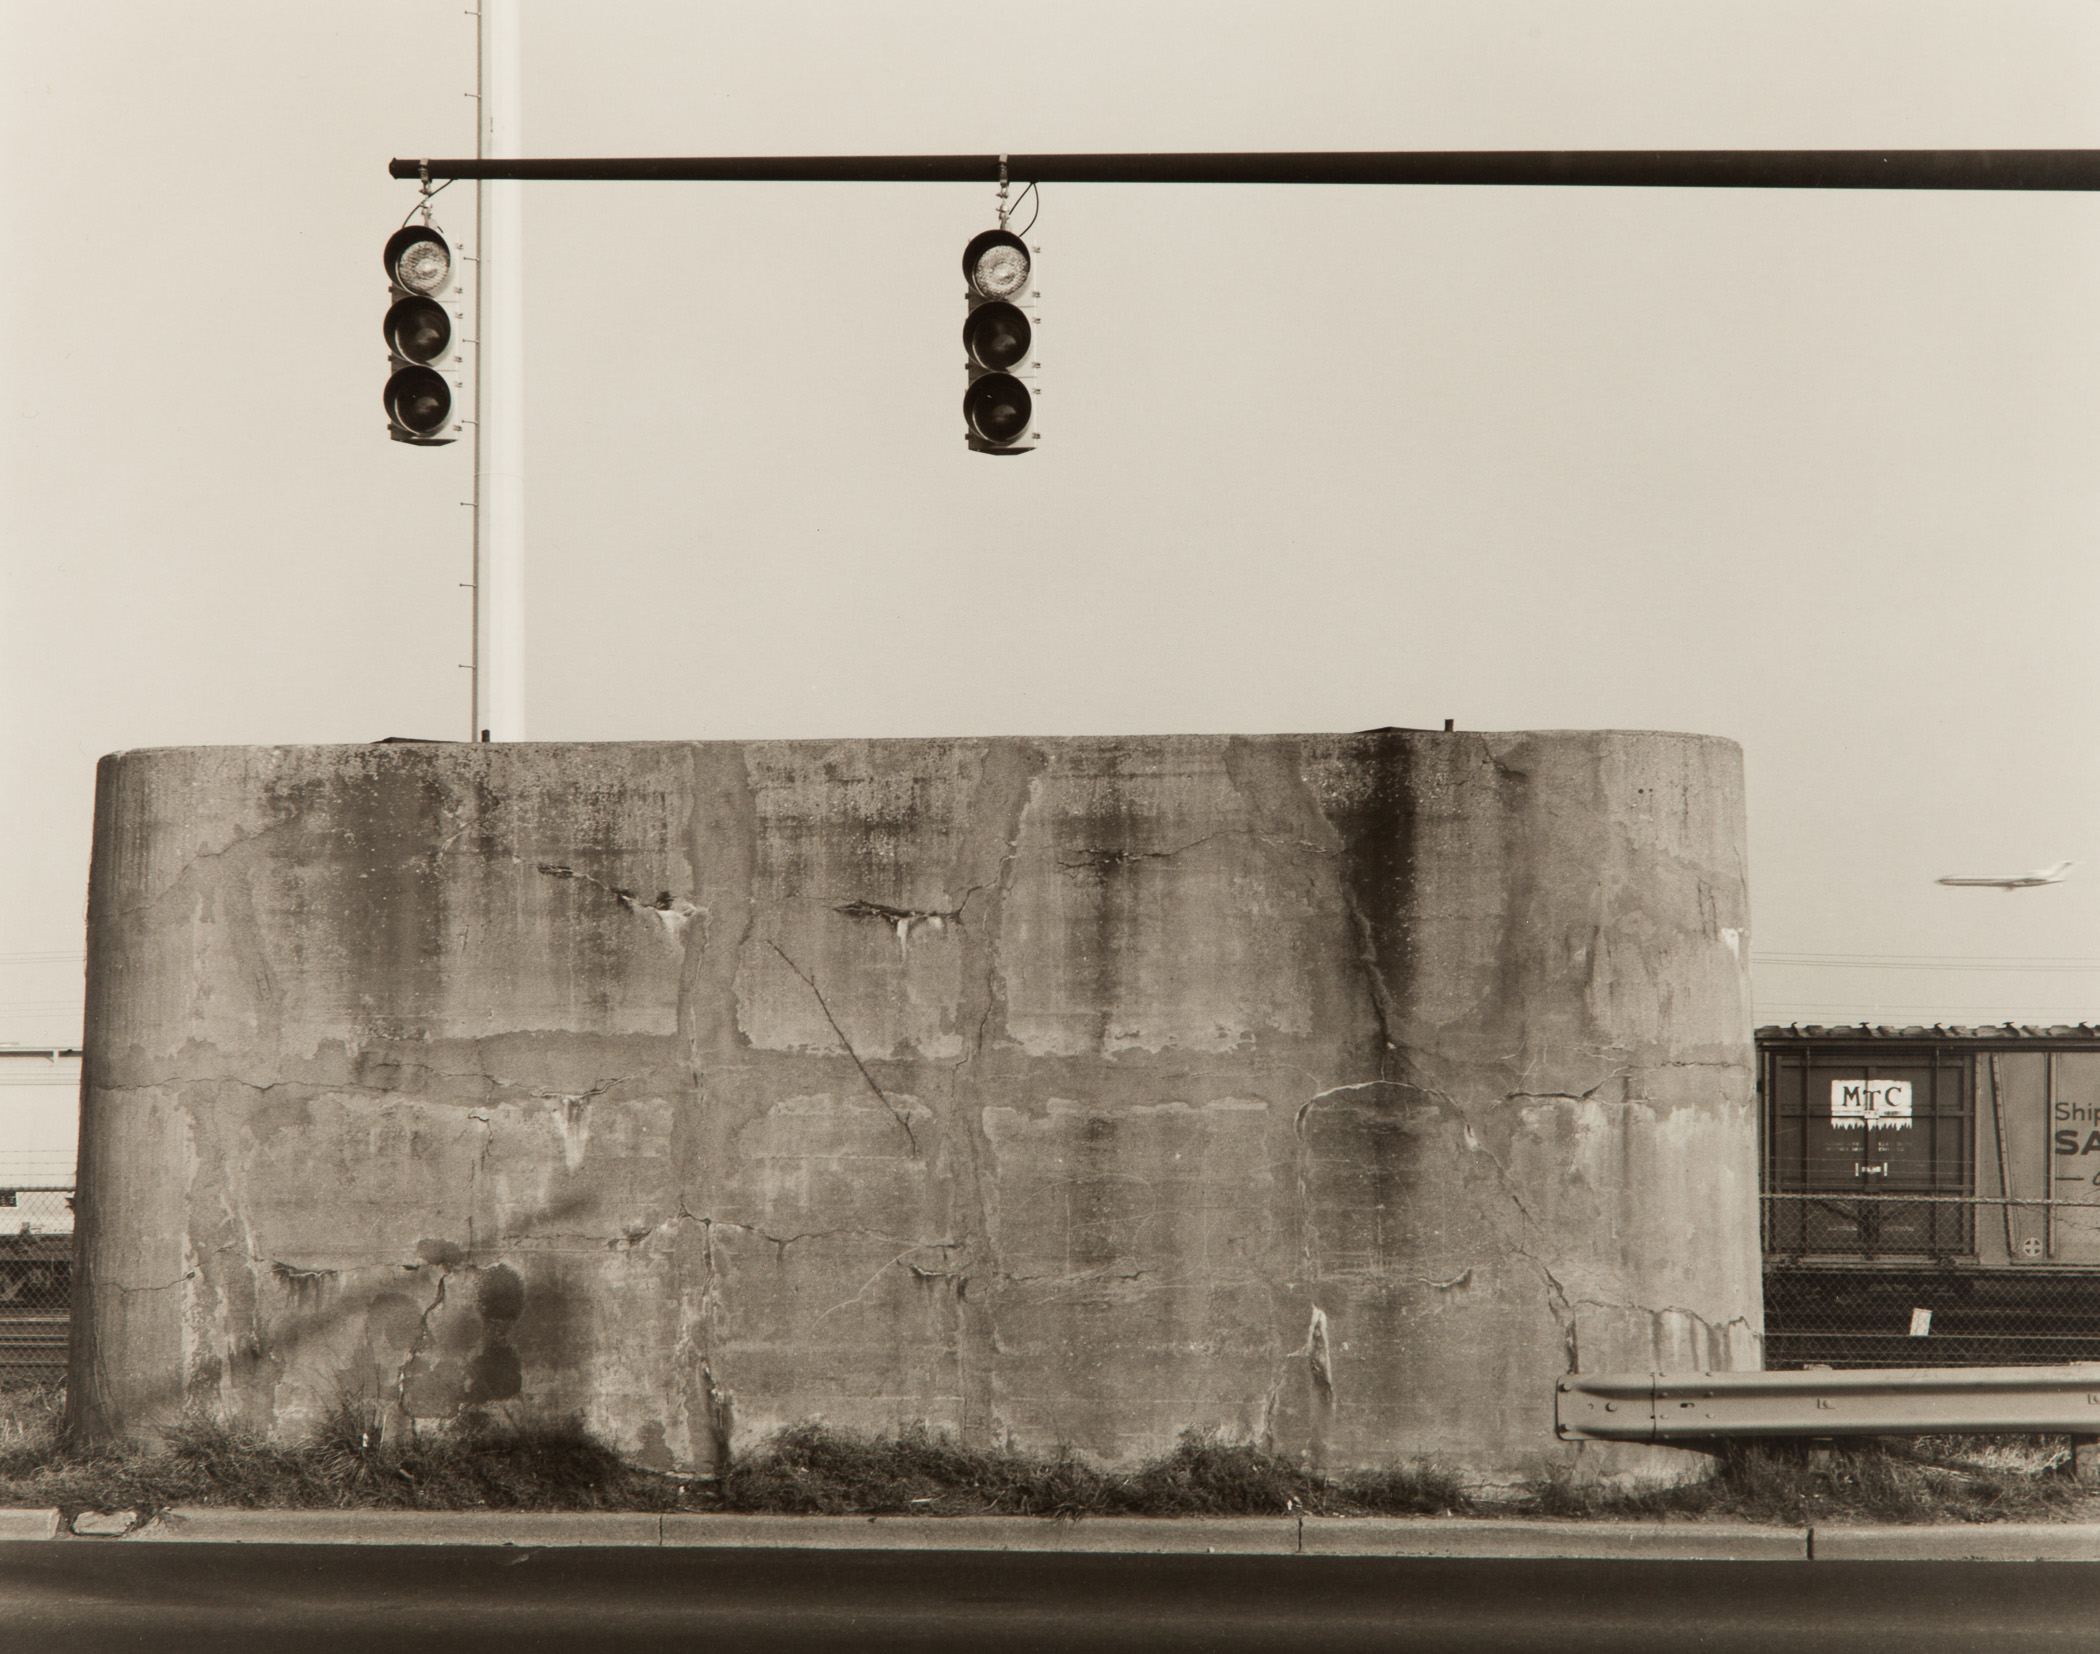 "Jason Horowitz  Alexandria, VA , 1981 Gelatin silver print 9 1 ⁄ 4"" x 11 3 ⁄ 4"" on 11x14 paper Matted in 16""x20"" frame Sole existing silver print"